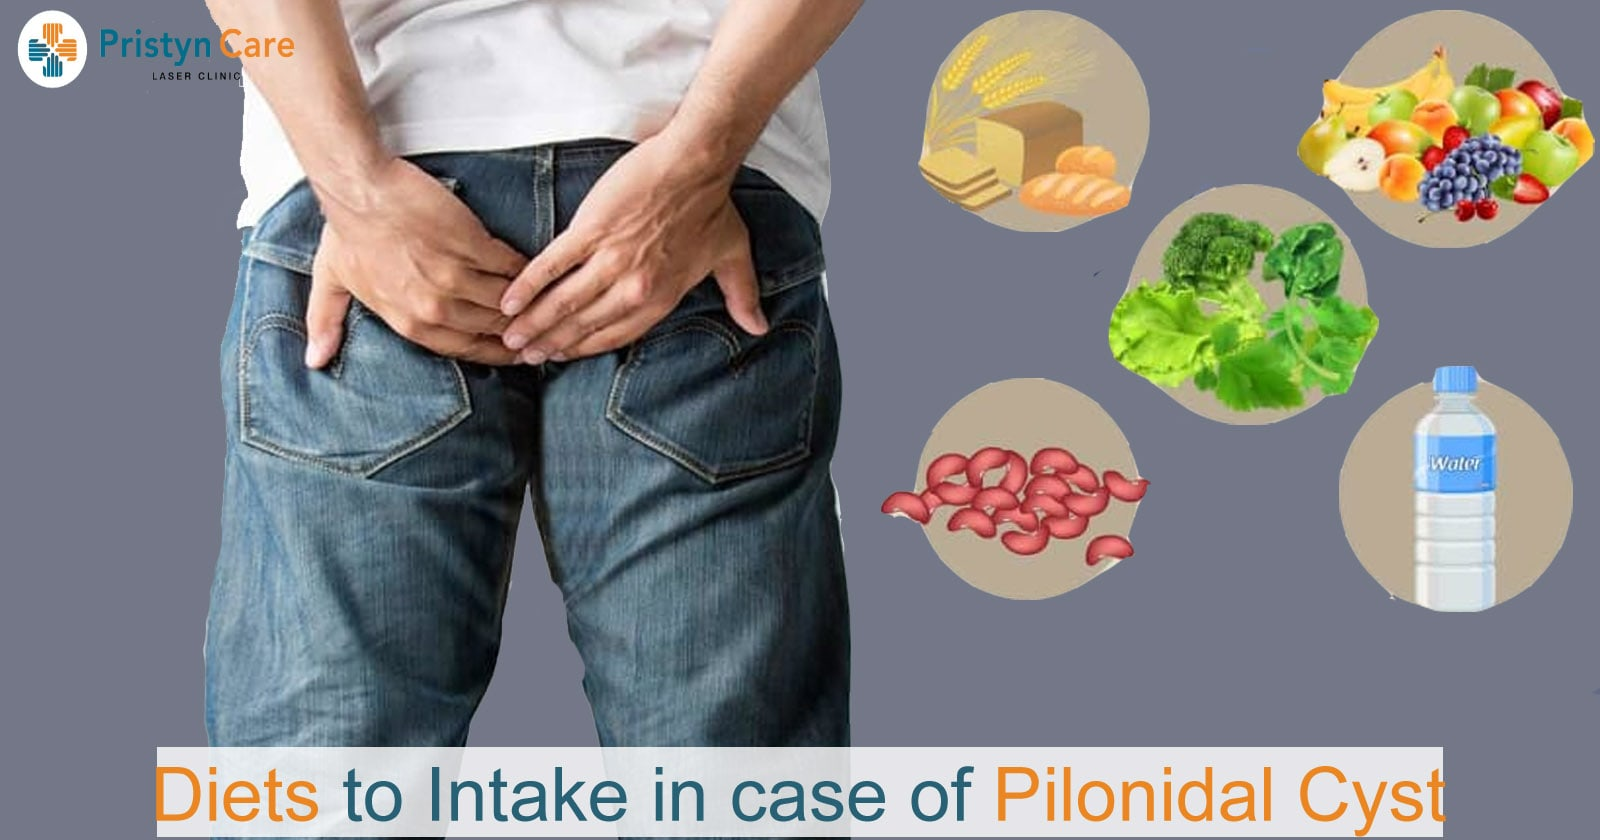 diets-to-intake-in-case-of-pilonidal-cyst-min